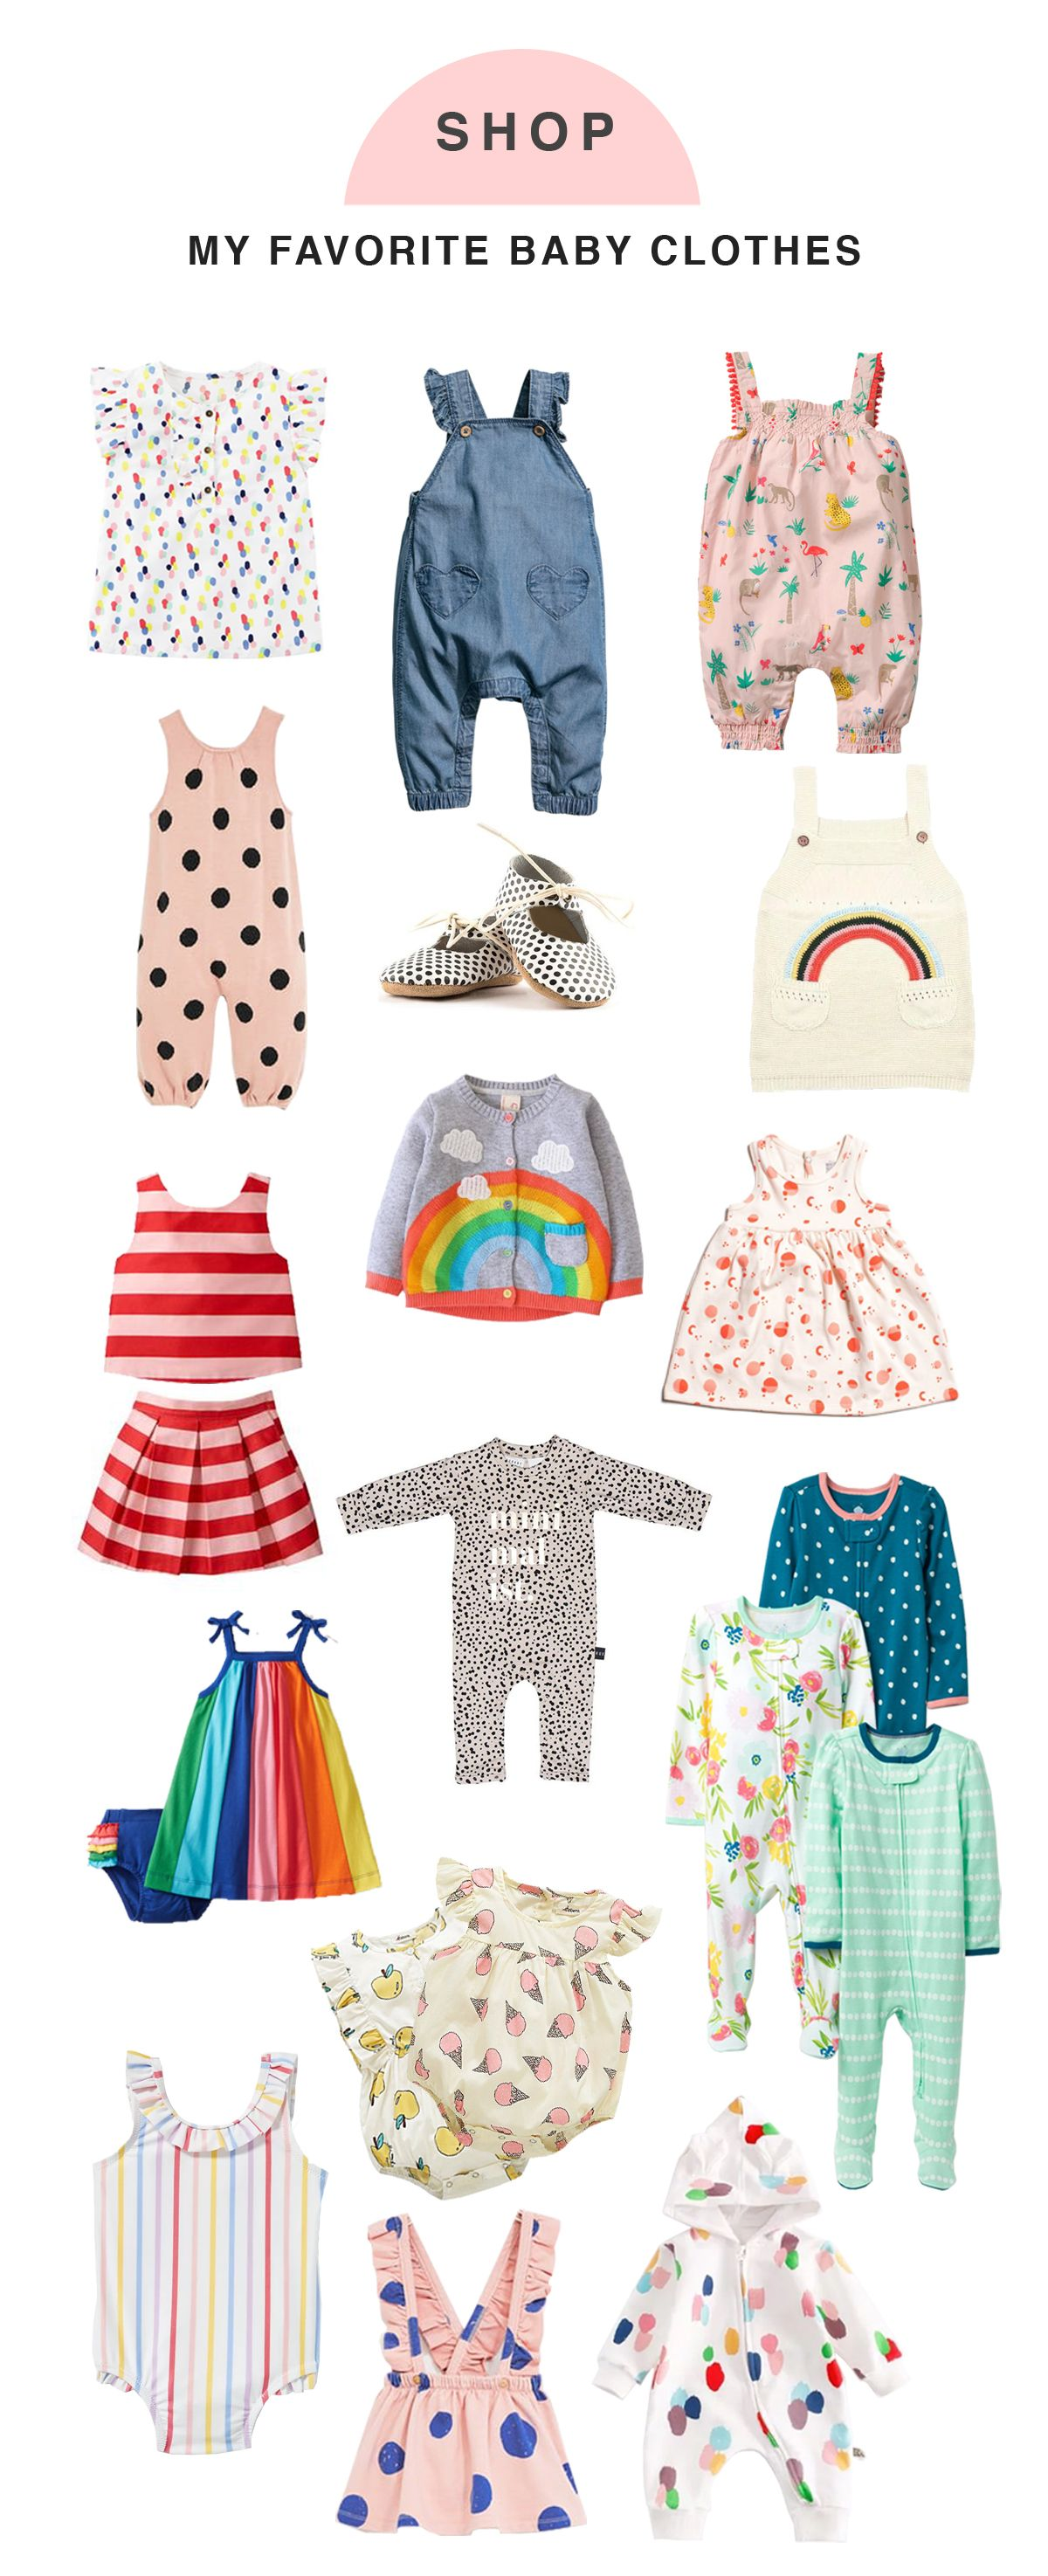 My Recent Favorite Places to Shop For Baby Clothing & Keeping them